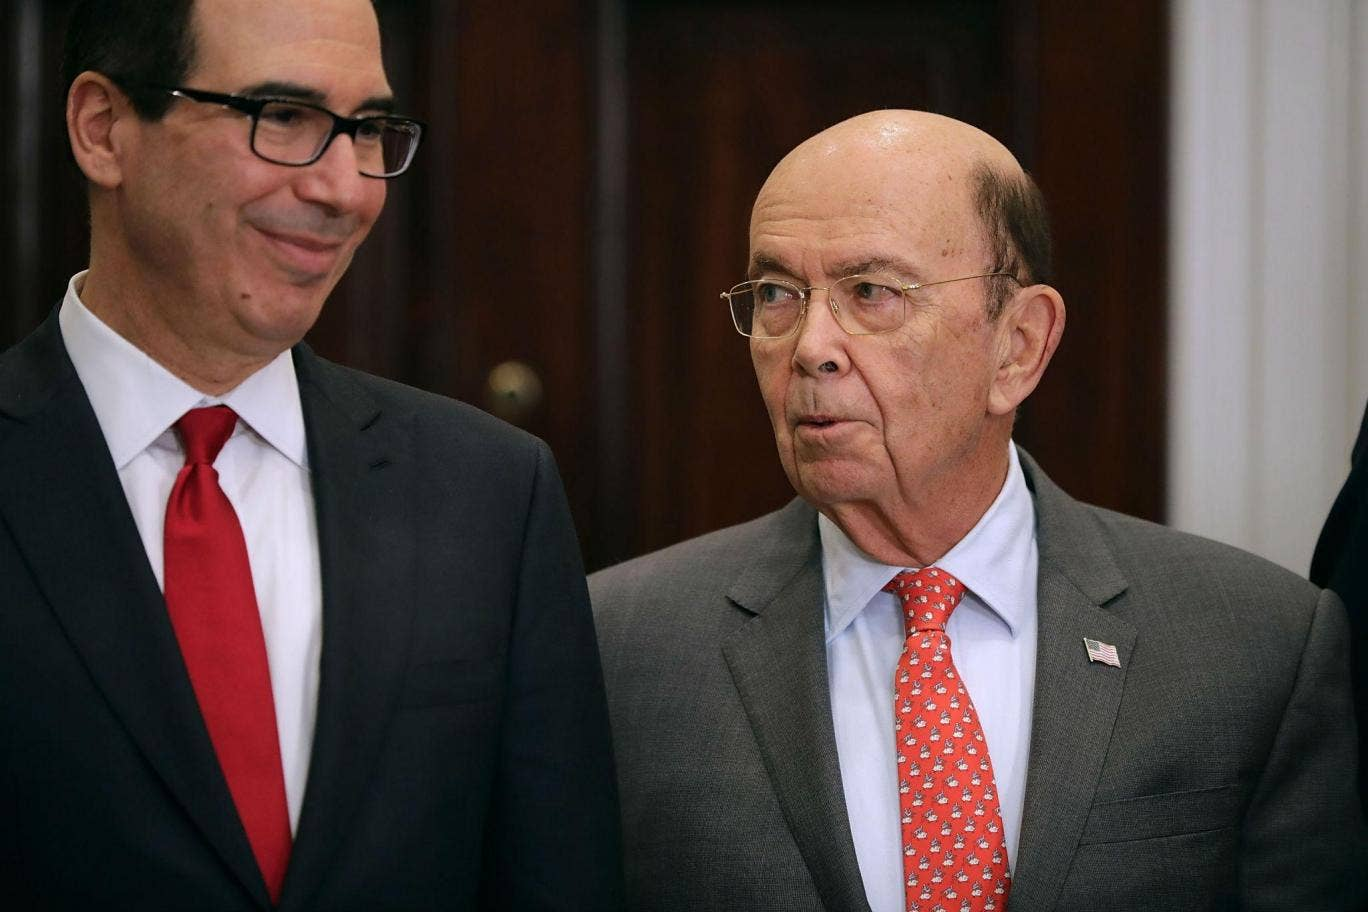 White House Confirms Larry Kudlow Will Become Trumps New Chief Tendencies Short Shirts Basic Long Collar Less Putih M Trump May Link Steel Tariff Exemptions To Nato Spending Says Mnuchin